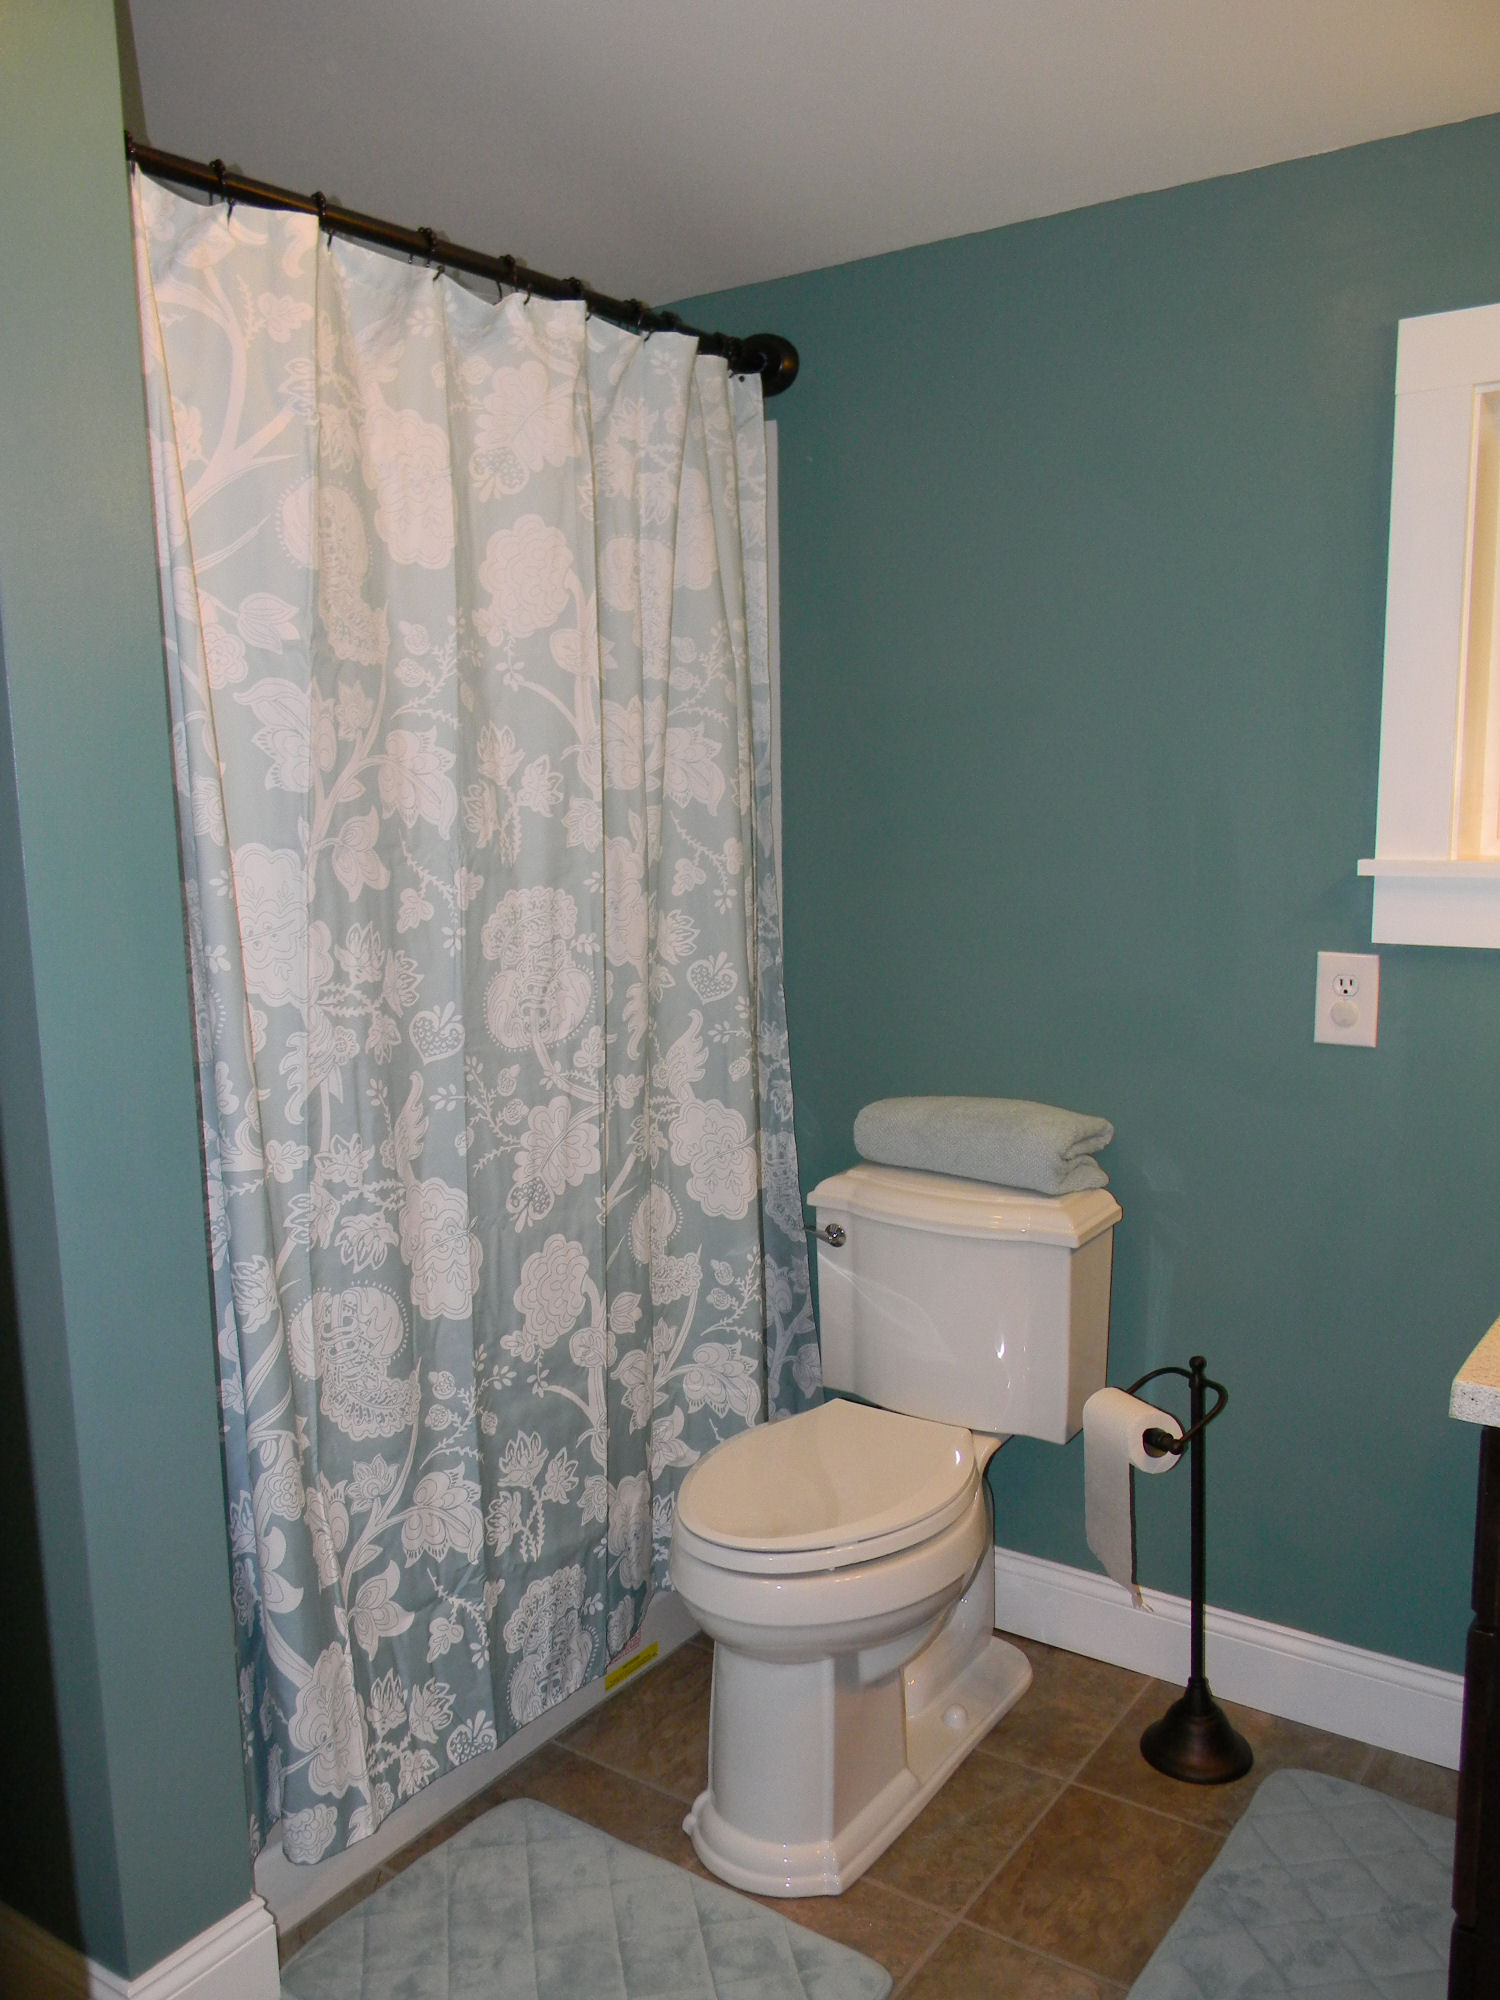 Giving the throne the royal treatment final mobile home for Home bathroom remodel